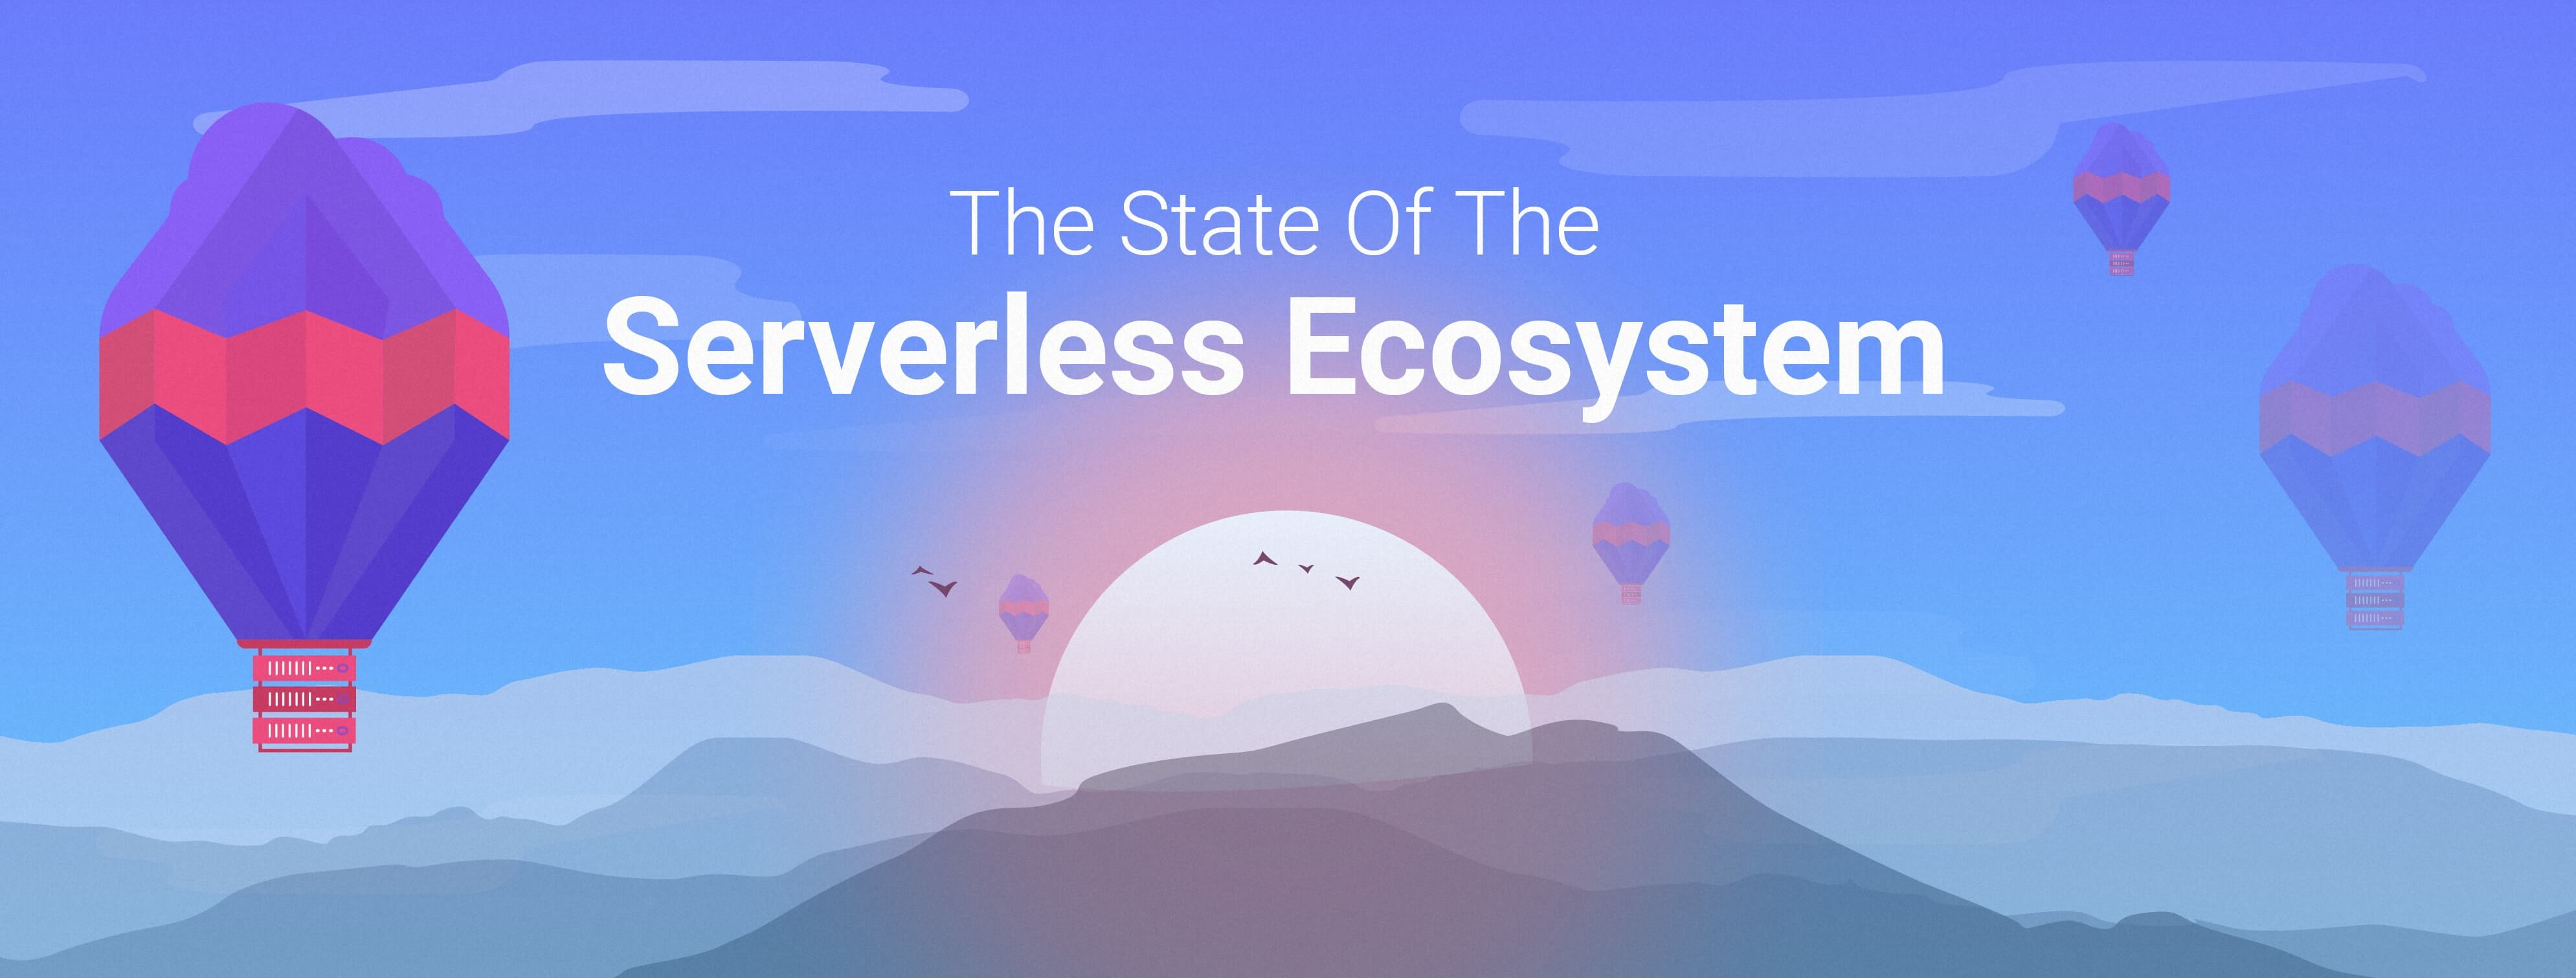 The State of The Serverless Ecosystem